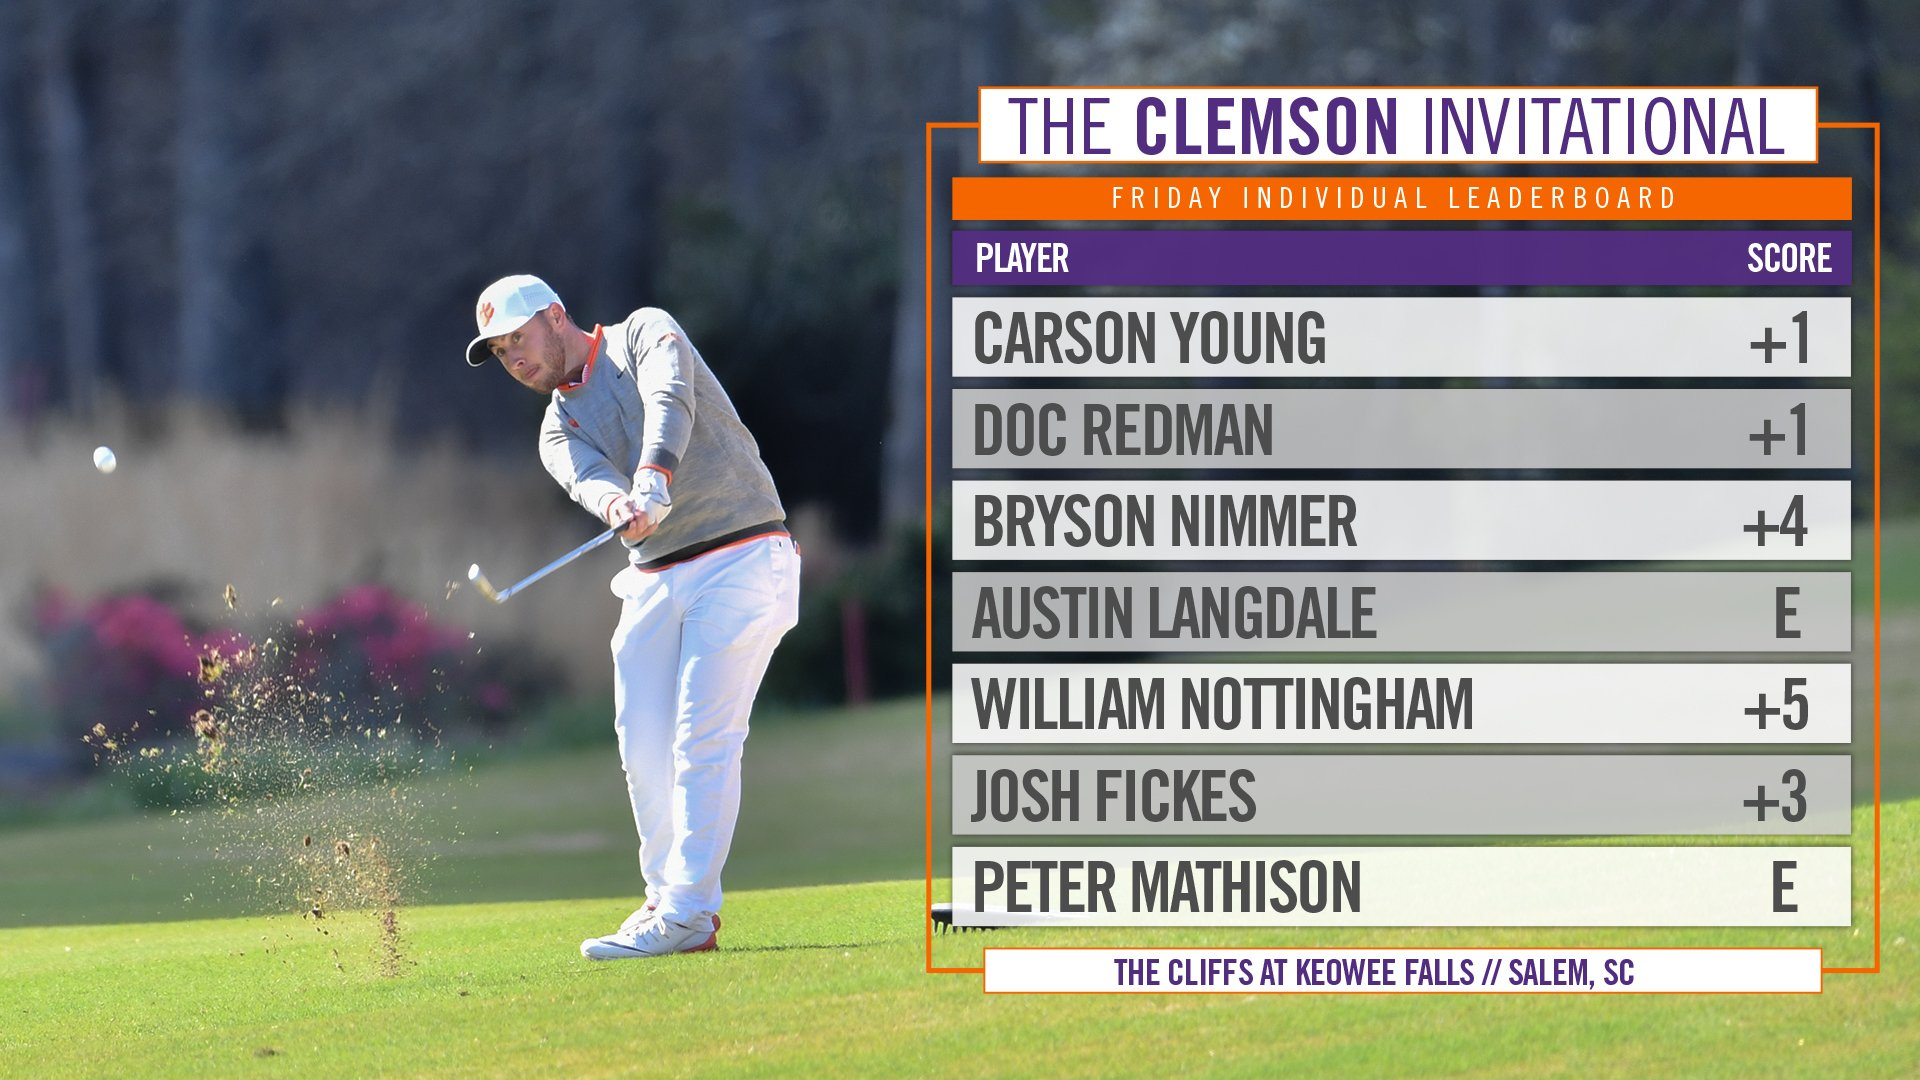 Great day at the #ClemsonInvitational! Tigers on top going into Day 2! 🐅 https://t.co/sCRTaYptNC